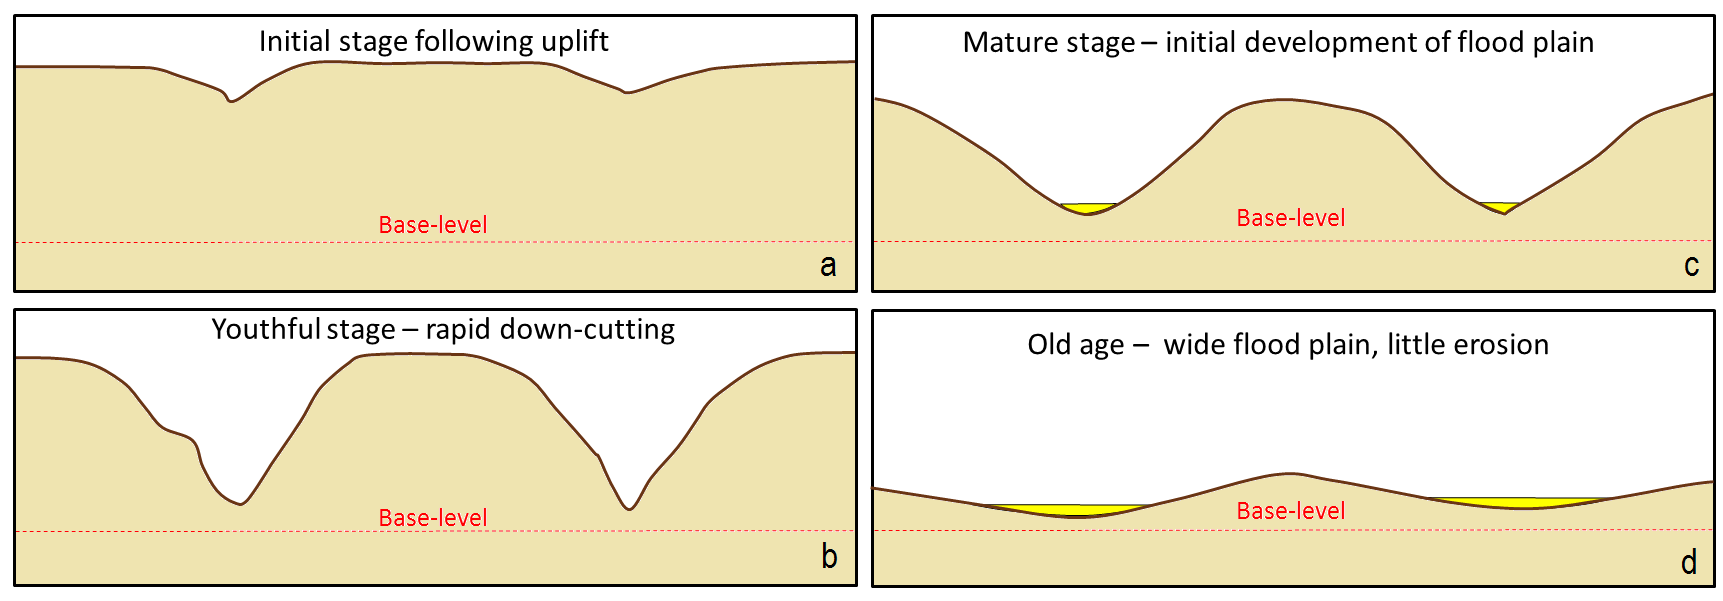 Figure 13.13 A depiction of the Davis cycle of erosion: a: initial stage, b: youthful stage, c: mature stage, and d: old age. [SE]